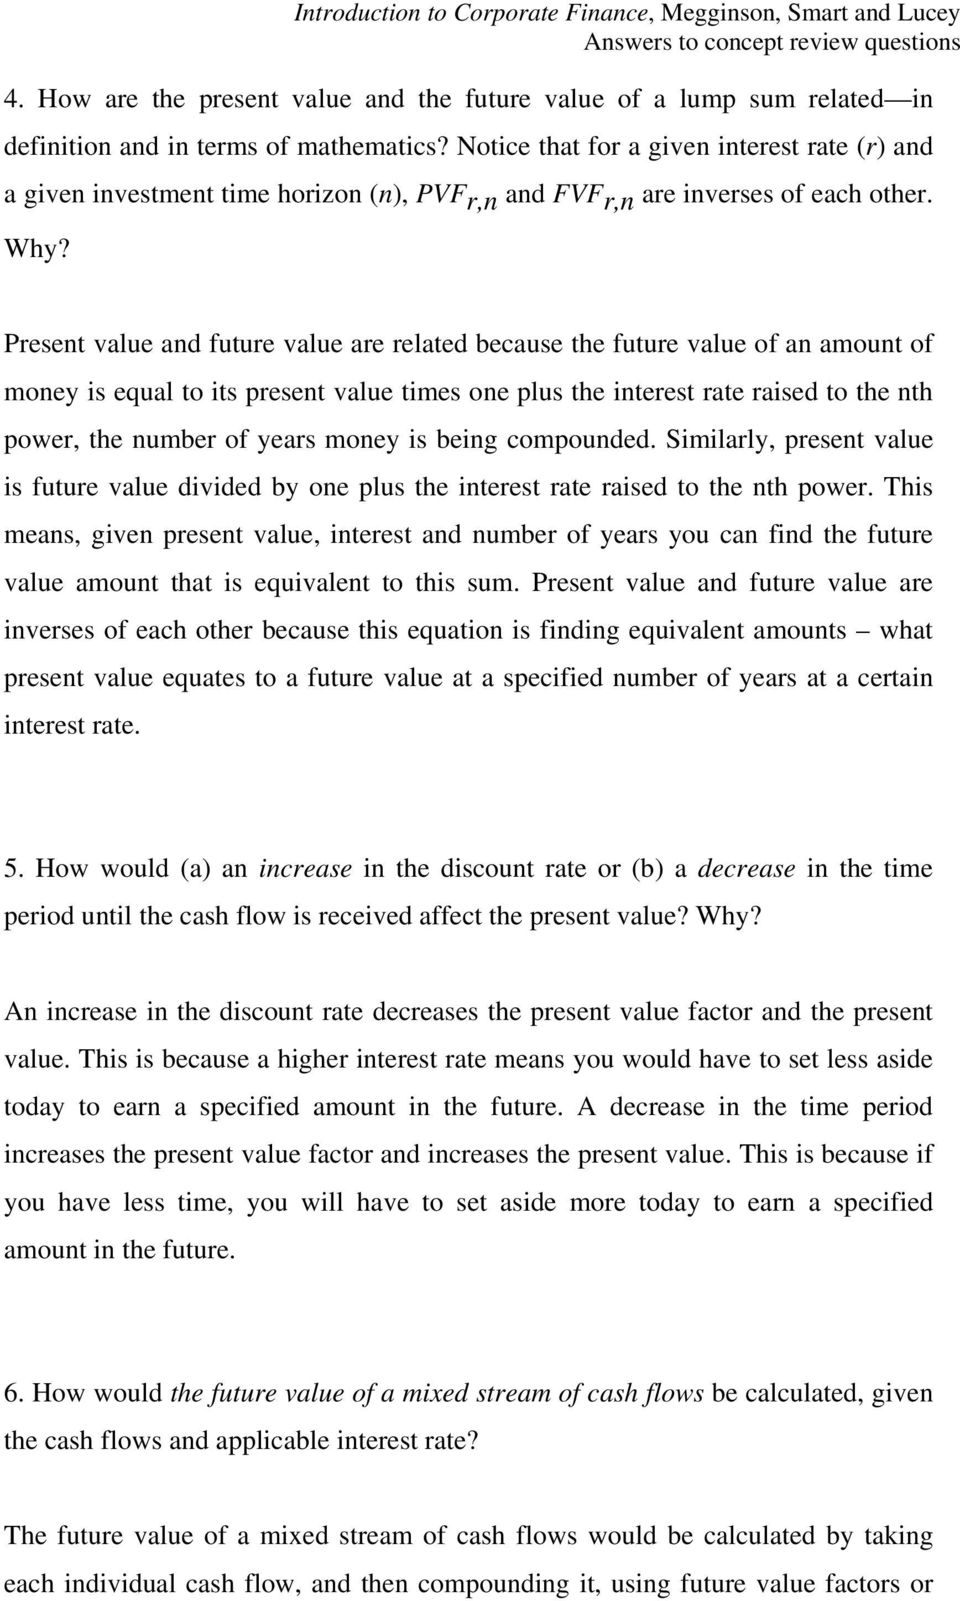 Present value and future value are related because the future value of an amount of money is equal to its present value times one plus the interest rate raised to the nth power, the number of years